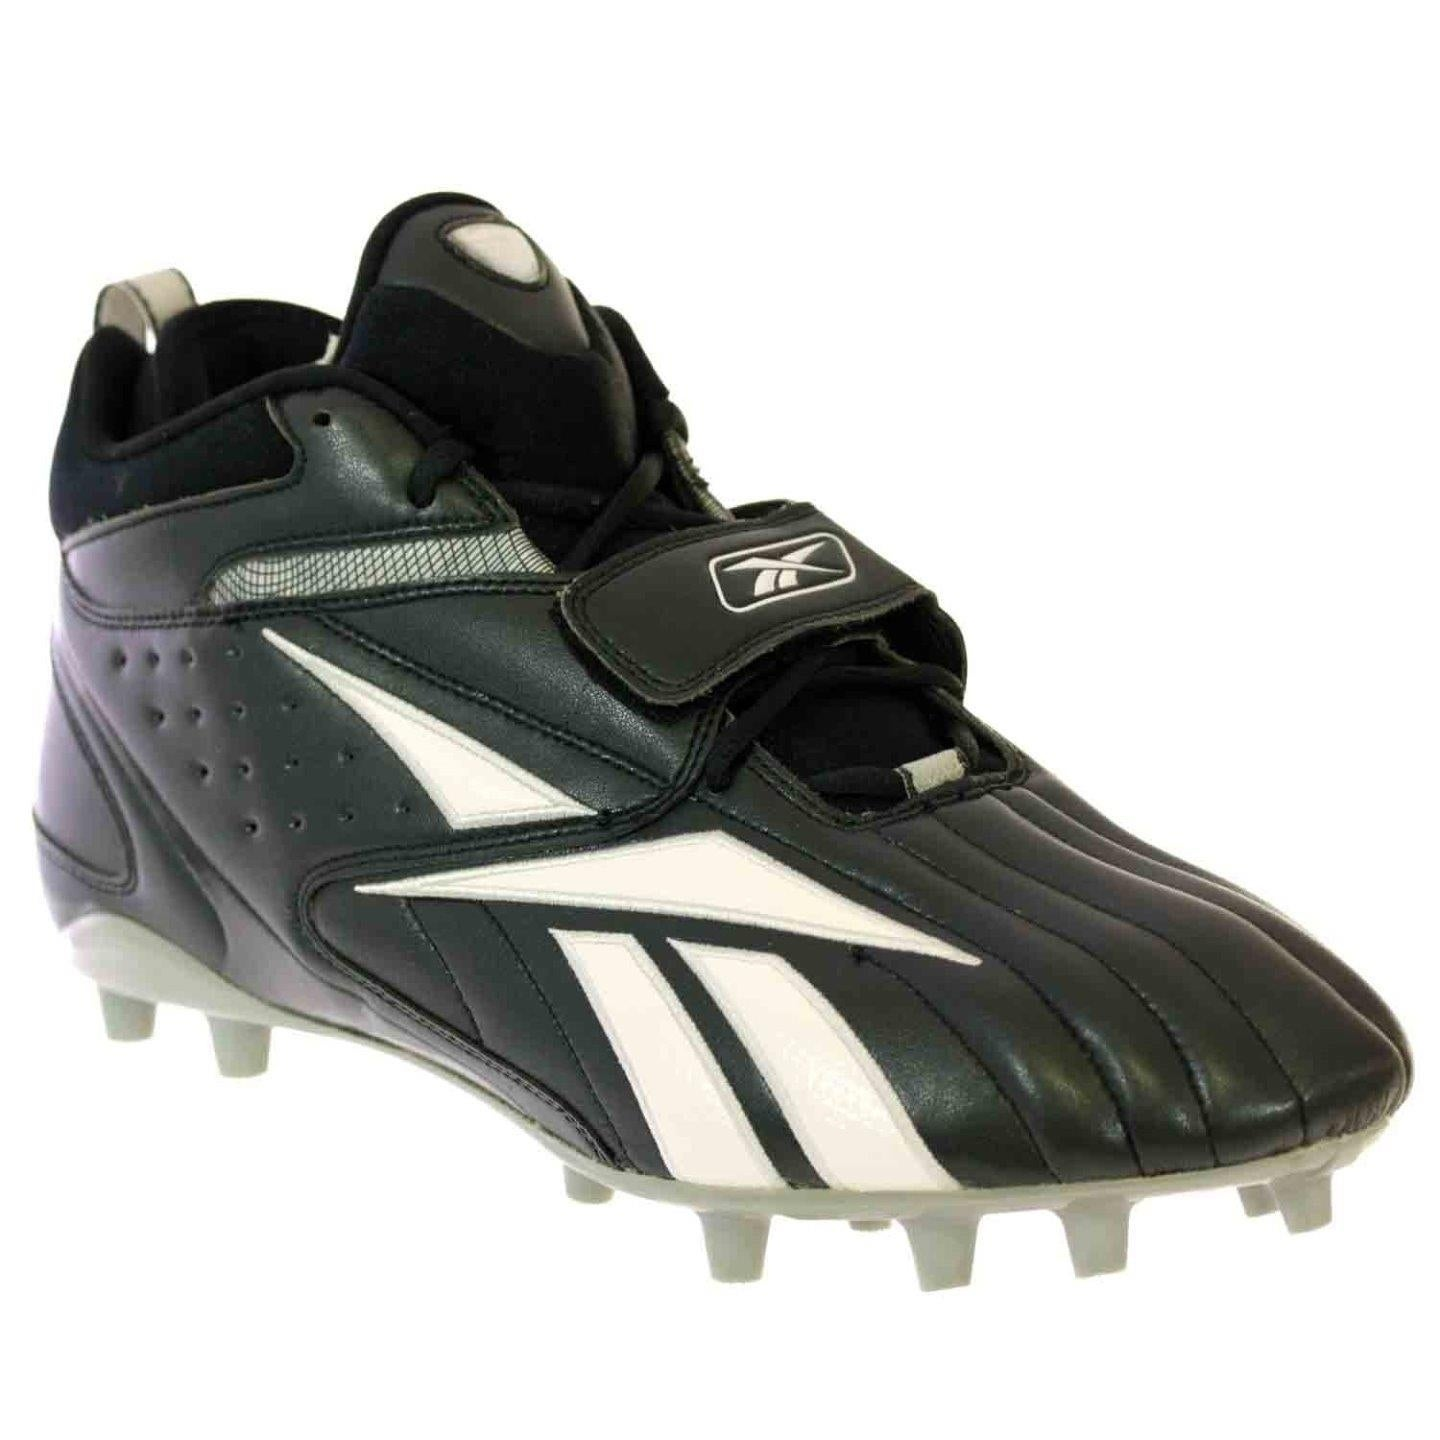 87654d87d Shop Reebok PRO FULL BLITZ STRAP MP Mens Football Cleats Black White - Free  Shipping Today - Overstock - 18078024